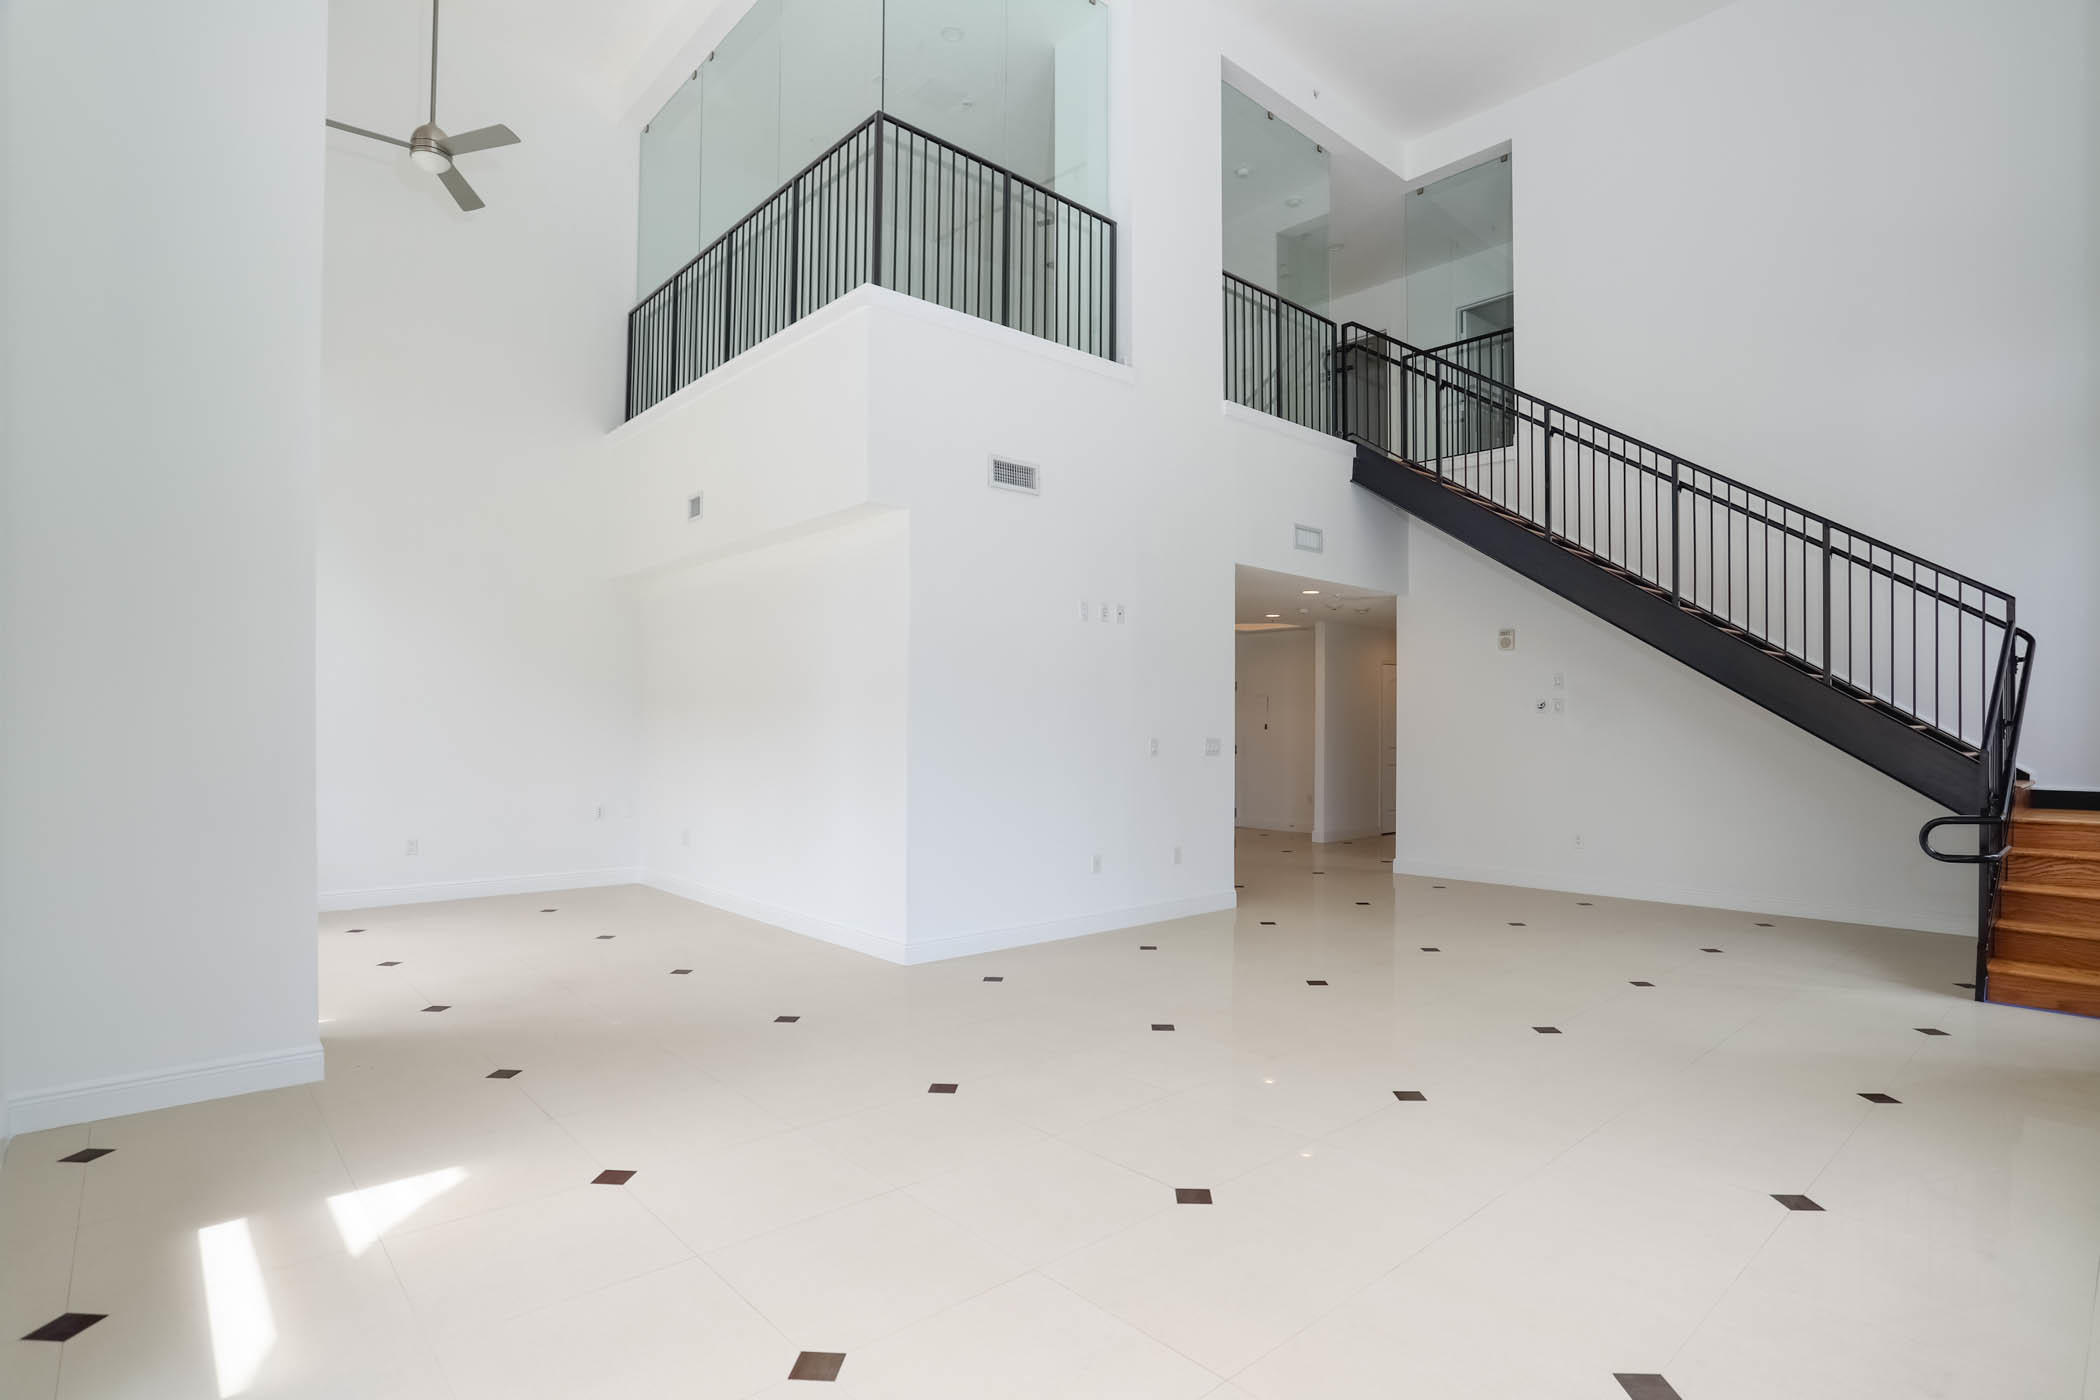 701 Olive Avenue, West Palm Beach, Florida 33401, 2 Bedrooms Bedrooms, ,1 BathroomBathrooms,Residential,for Rent,Olive,RX-10655660, , , ,for Rent